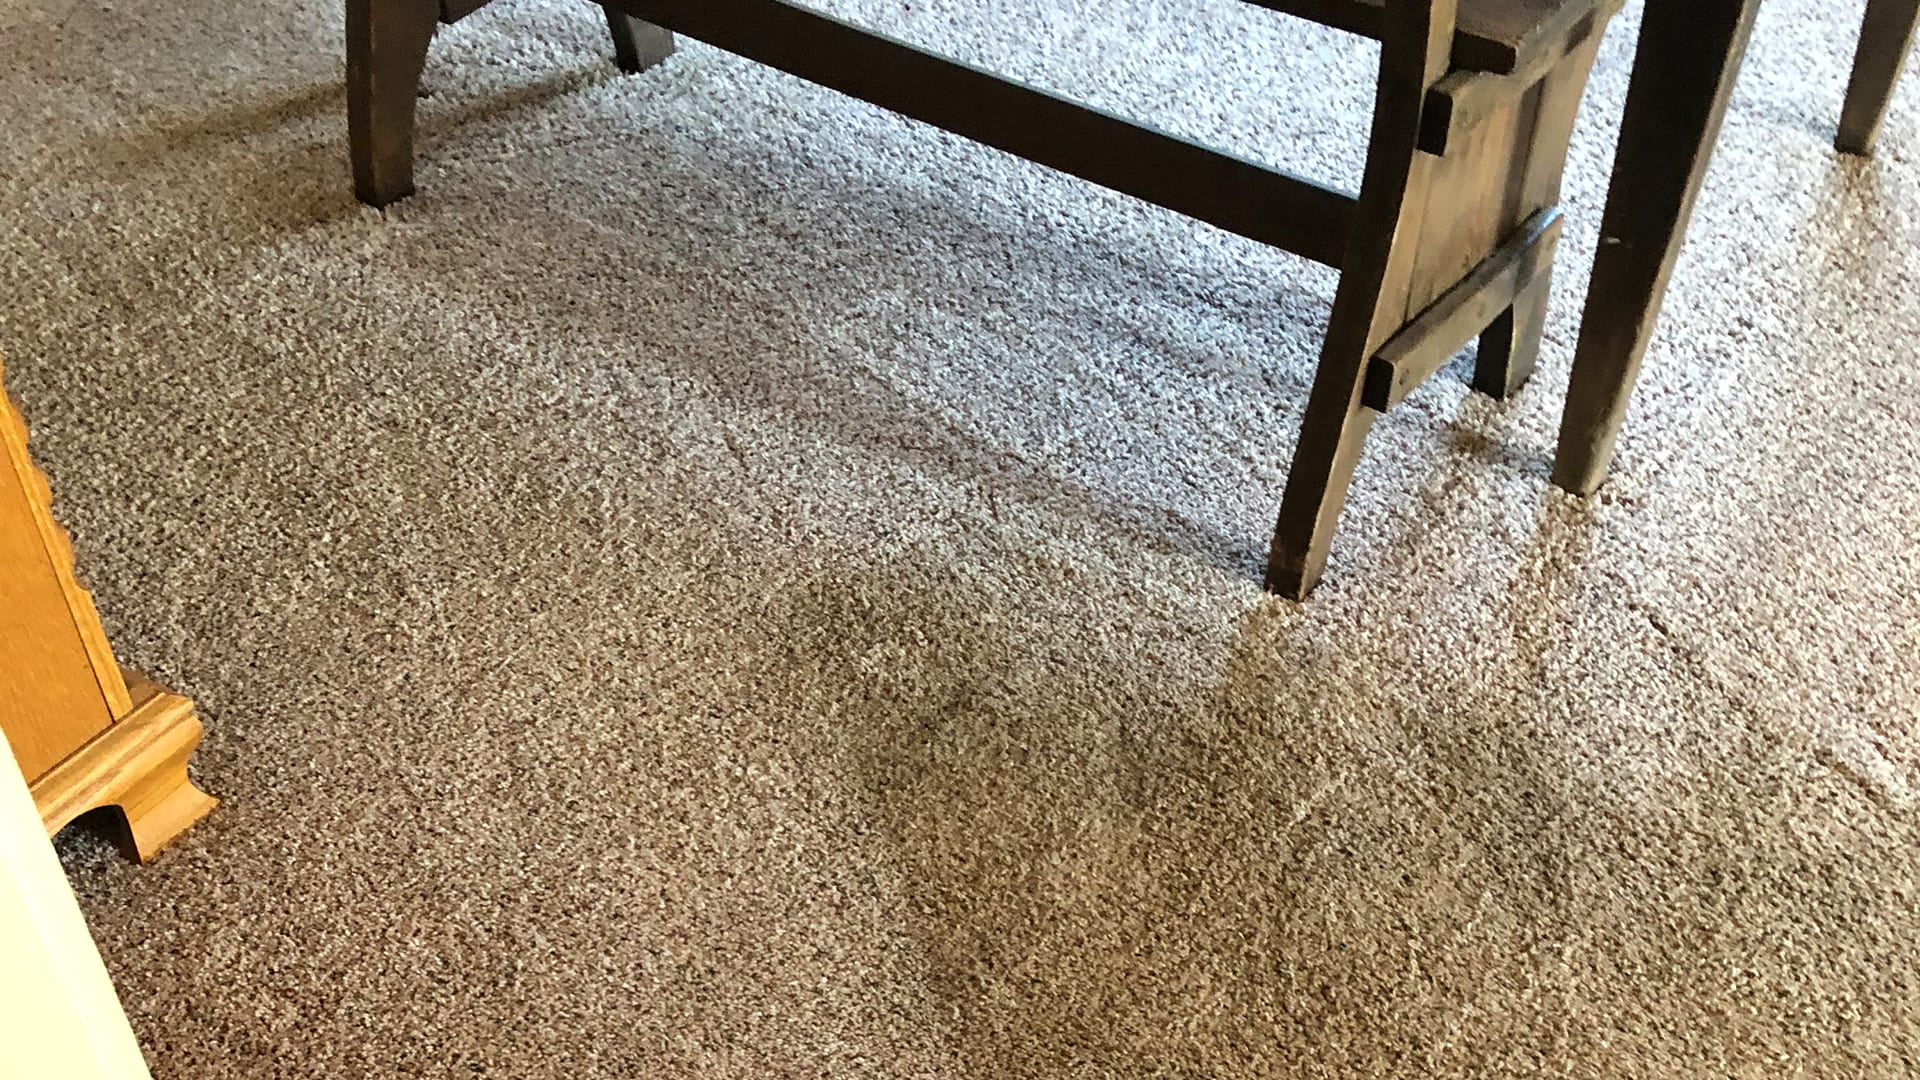 Cleaning carpet at commercial office